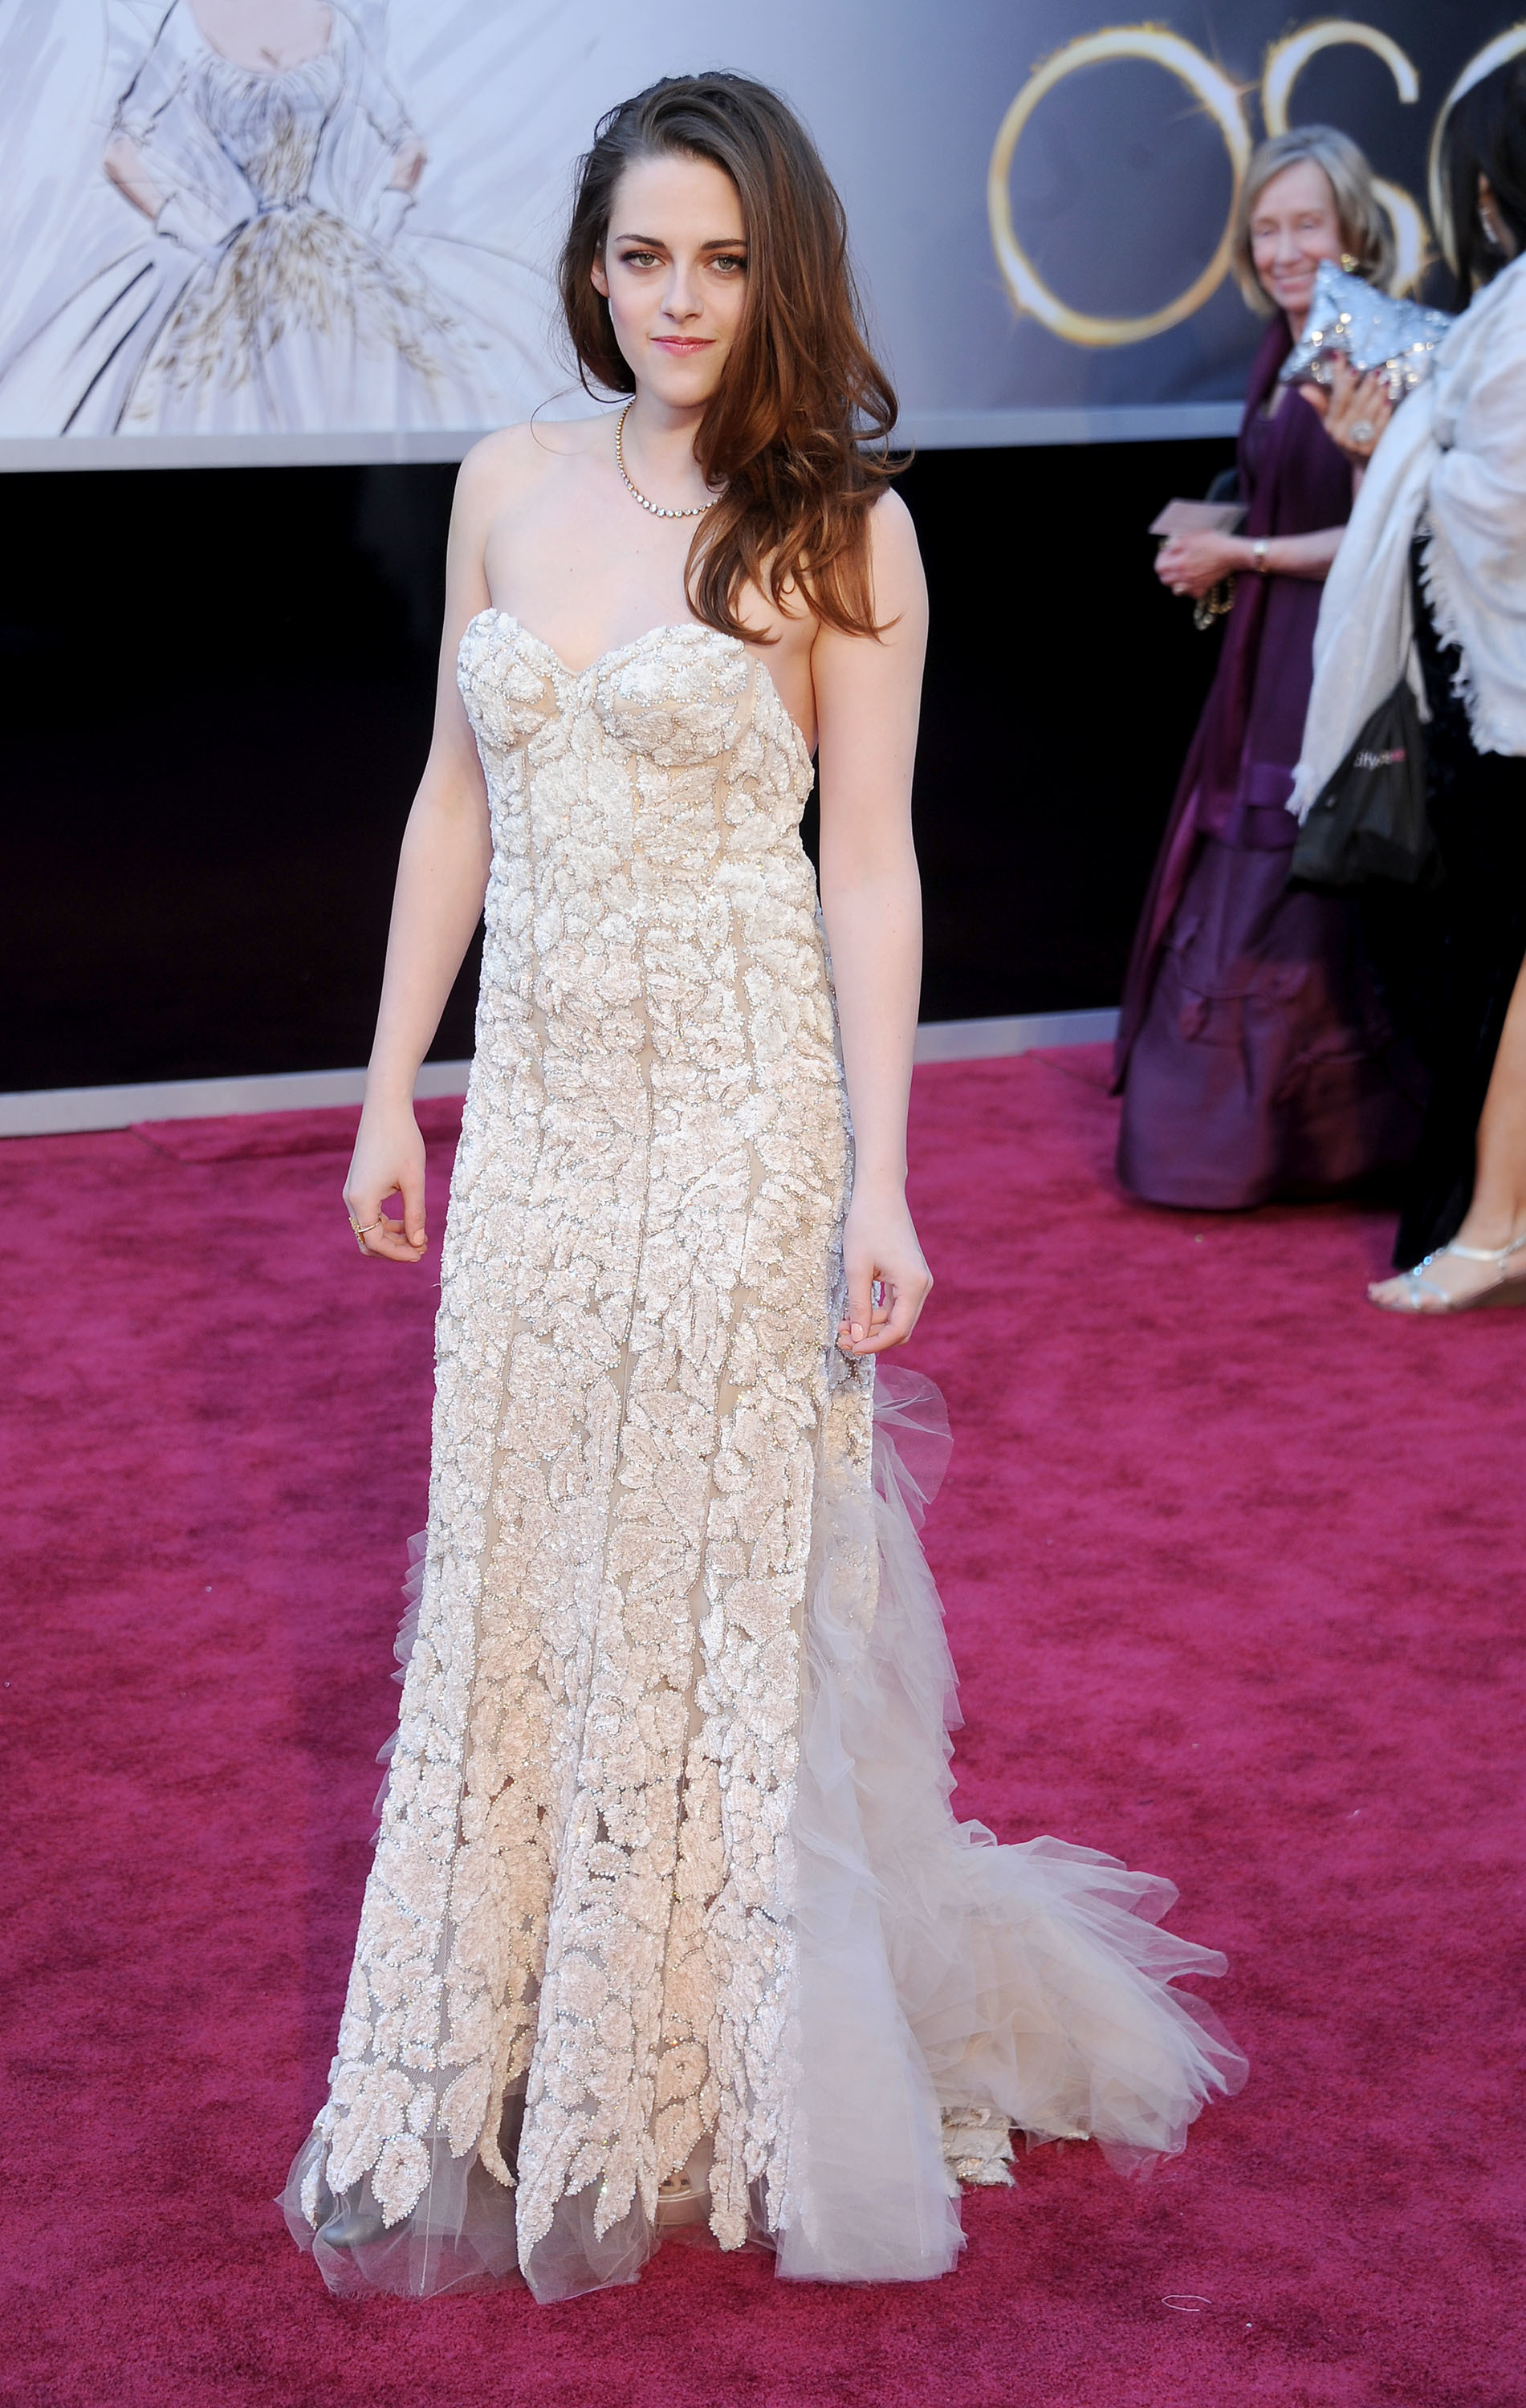 Kristen Stewart arrives at the Oscars at Hollywood & Highland Center  in Hollywood on Feb 24, 2013.